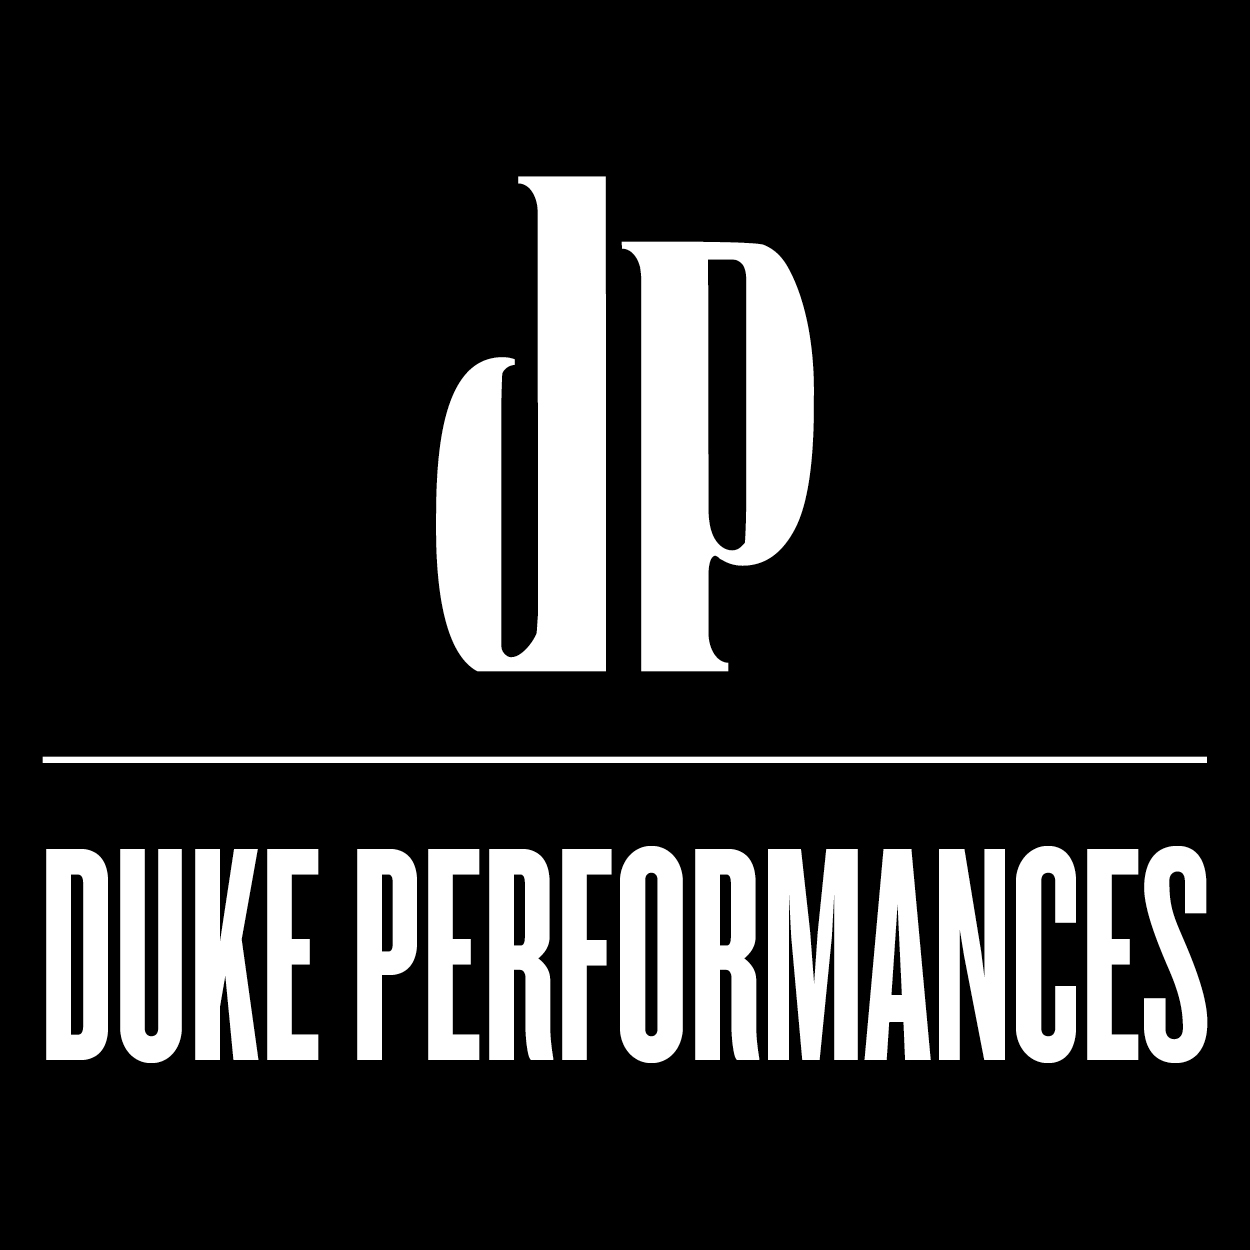 Duke Performances